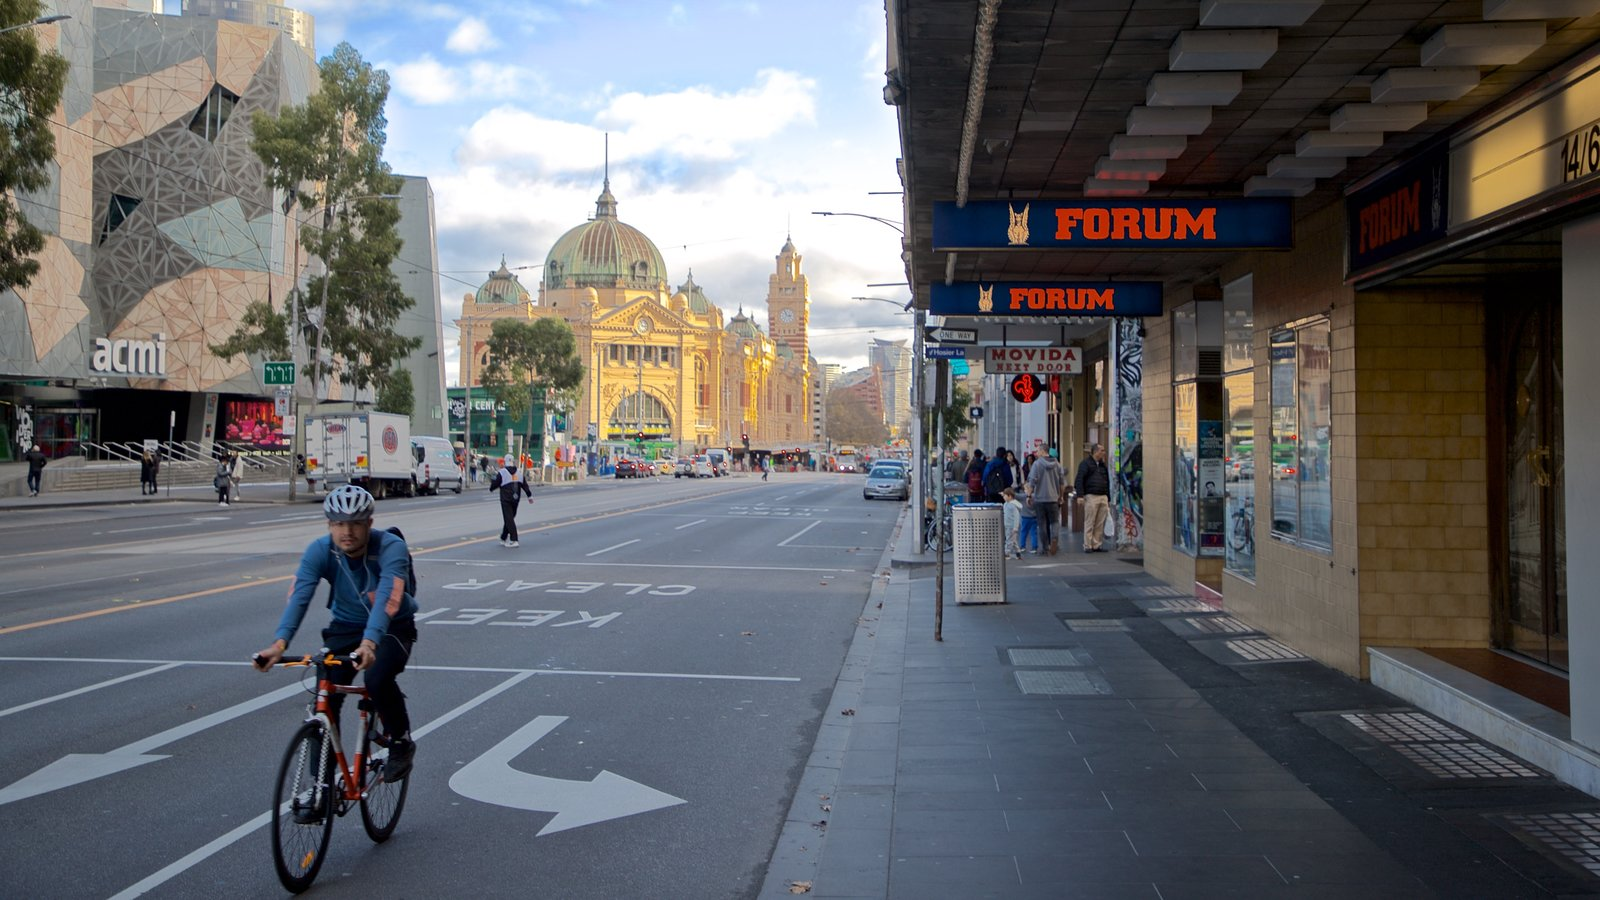 Forum Theatre which includes road cycling as well as an individual male